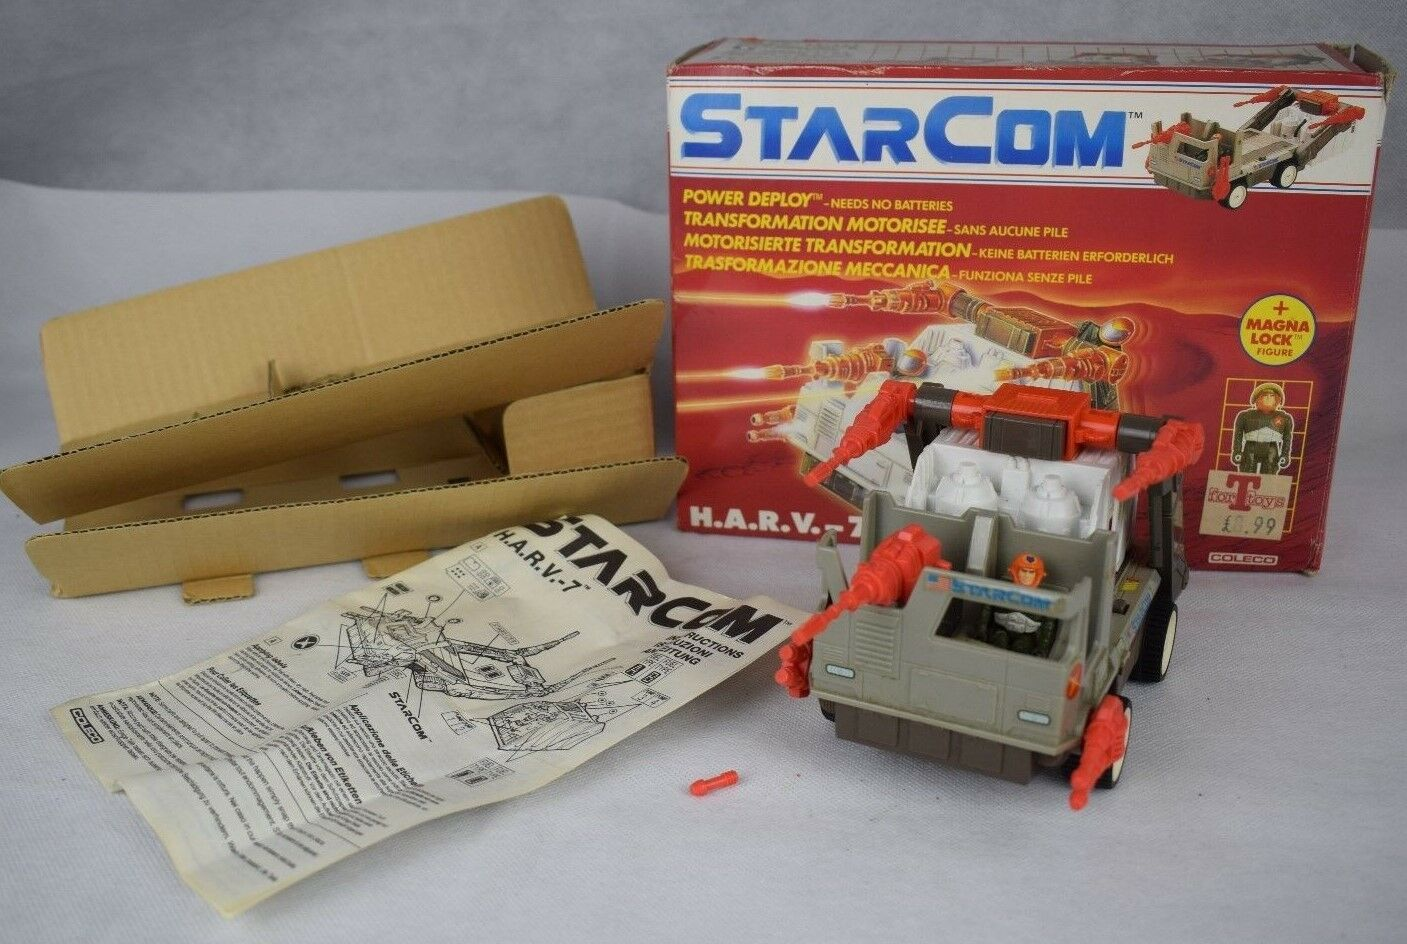 Boxed Starcom HARV-7, FUEL TRUCK, COLLECO, 1980S, VINTAGE TOY, SPACE,